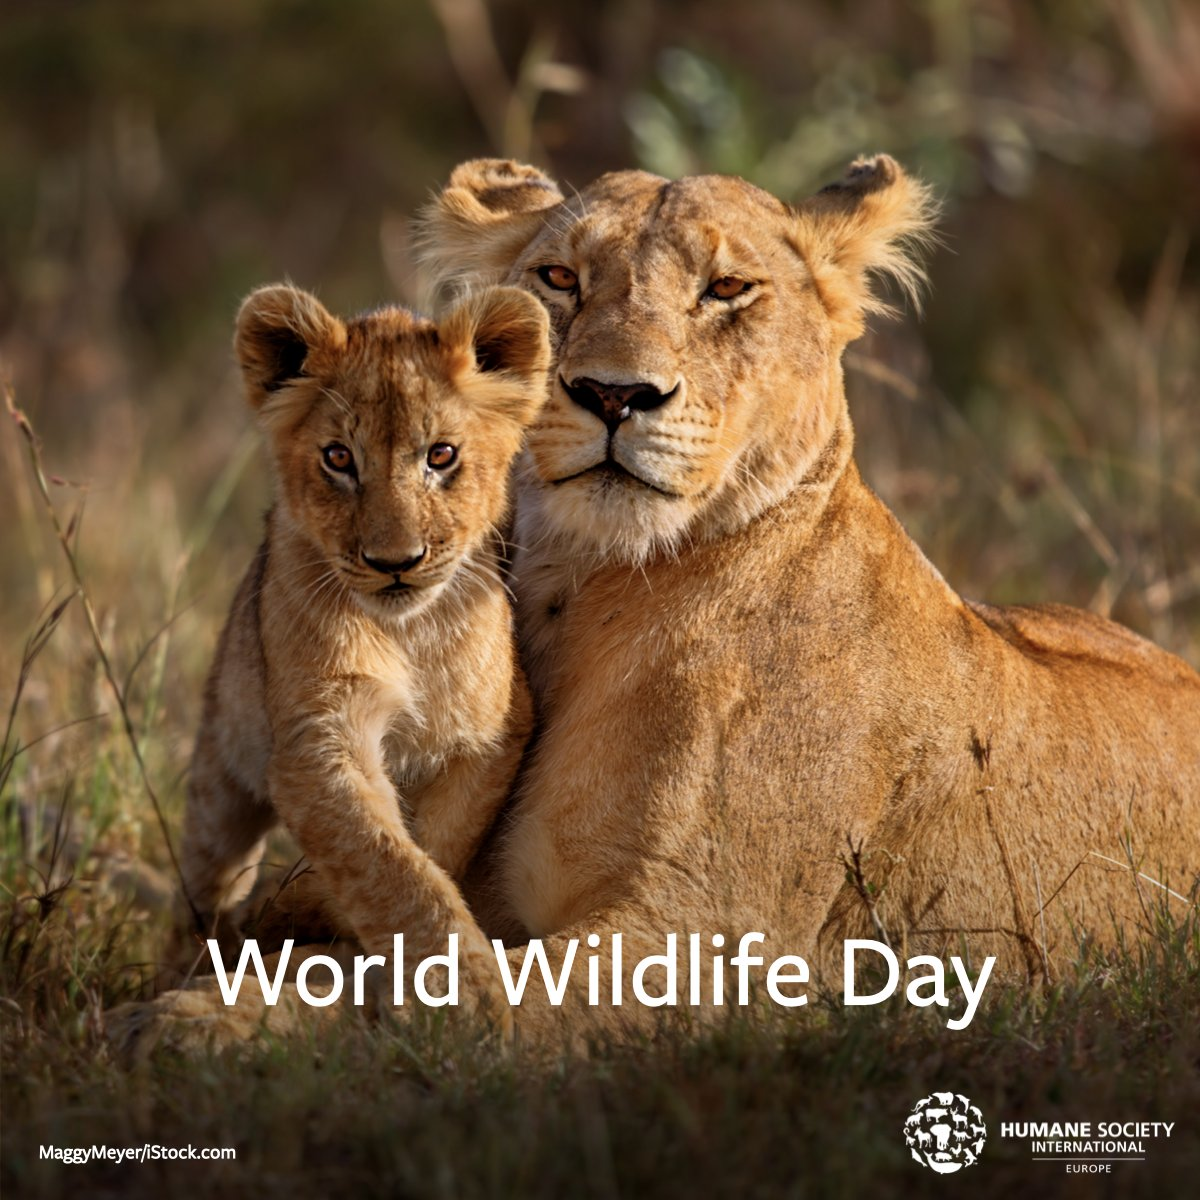 #WorldWildlifeDay